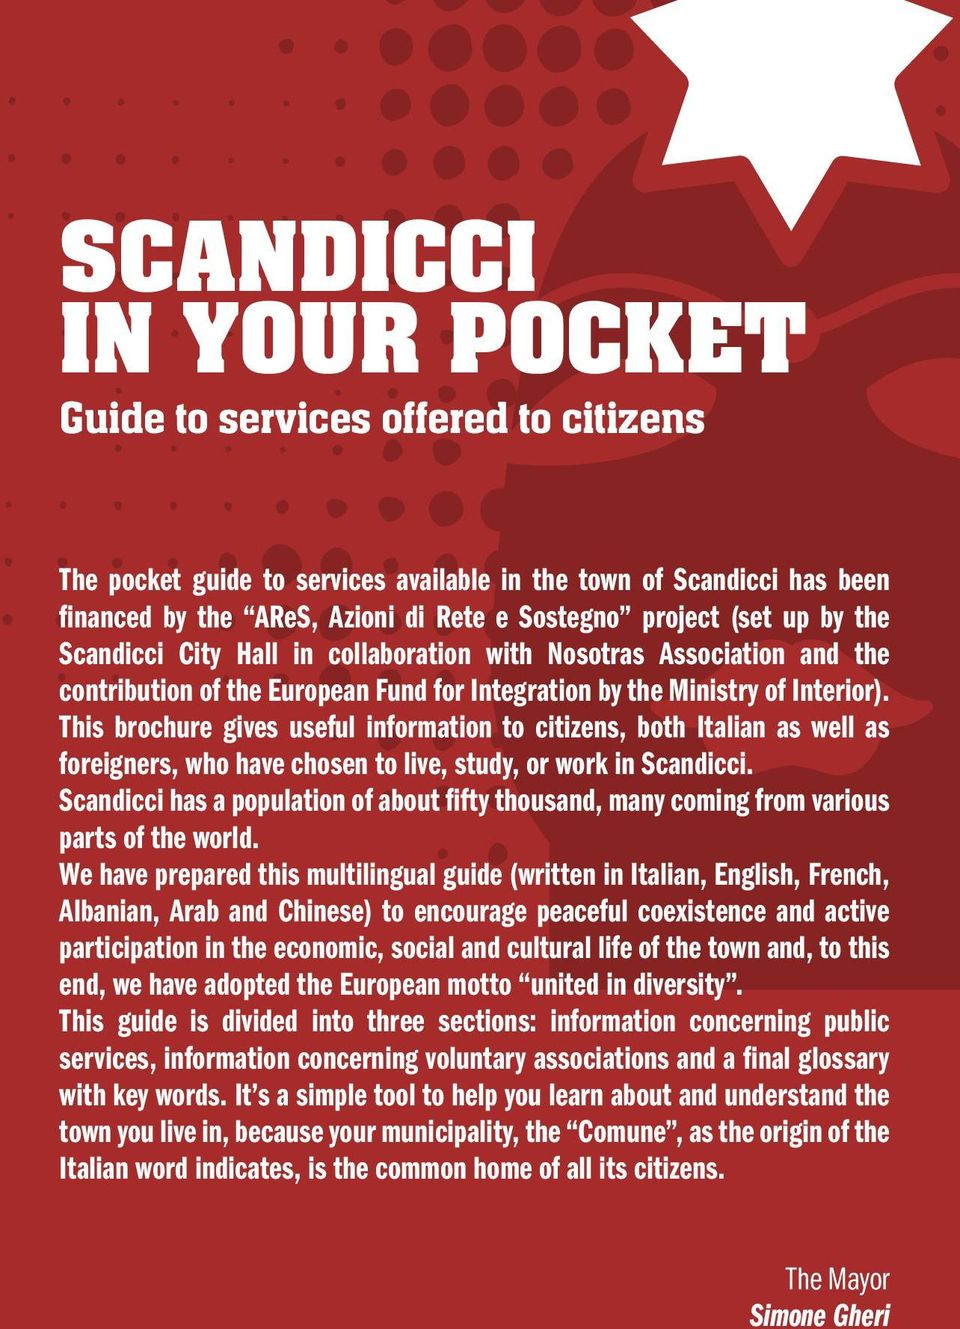 This brochure gives useful information to citizens, both Italian as well as foreigners, who have chosen to live, study, or work in Scandicci.